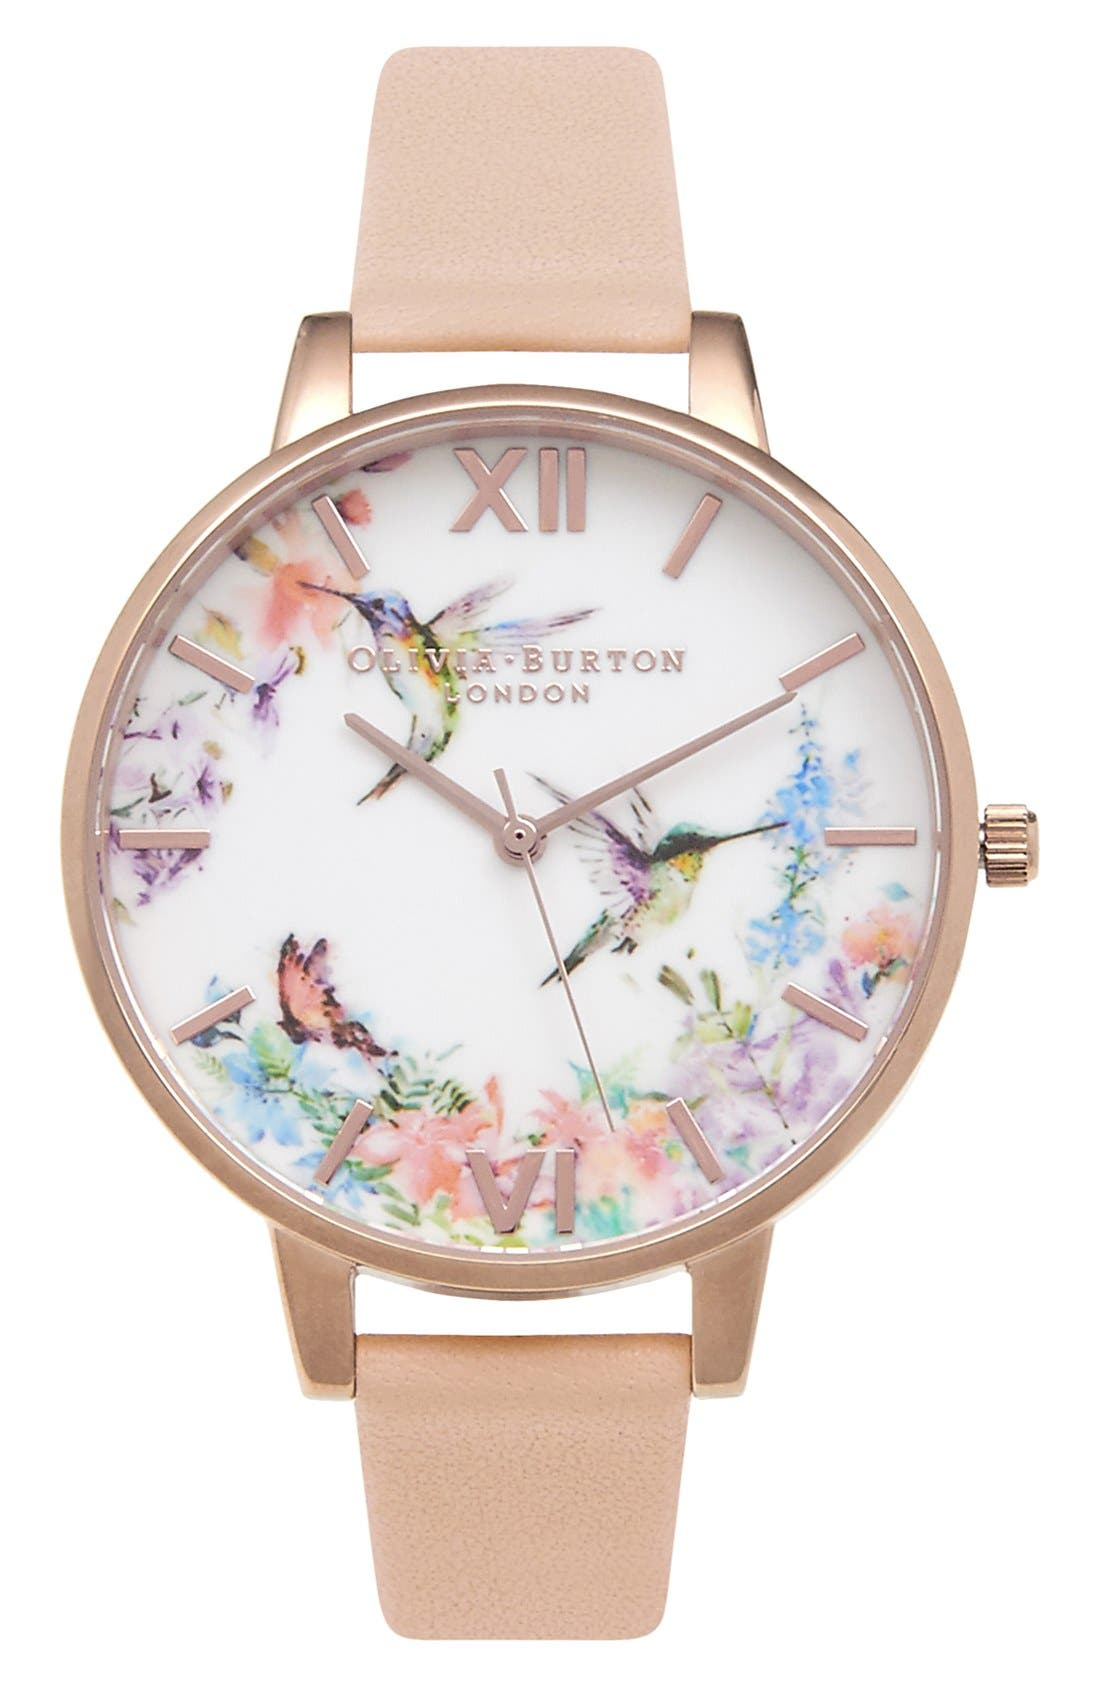 OLIVIA BURTON Painterly Prints Leather Strap Watch, 38mm